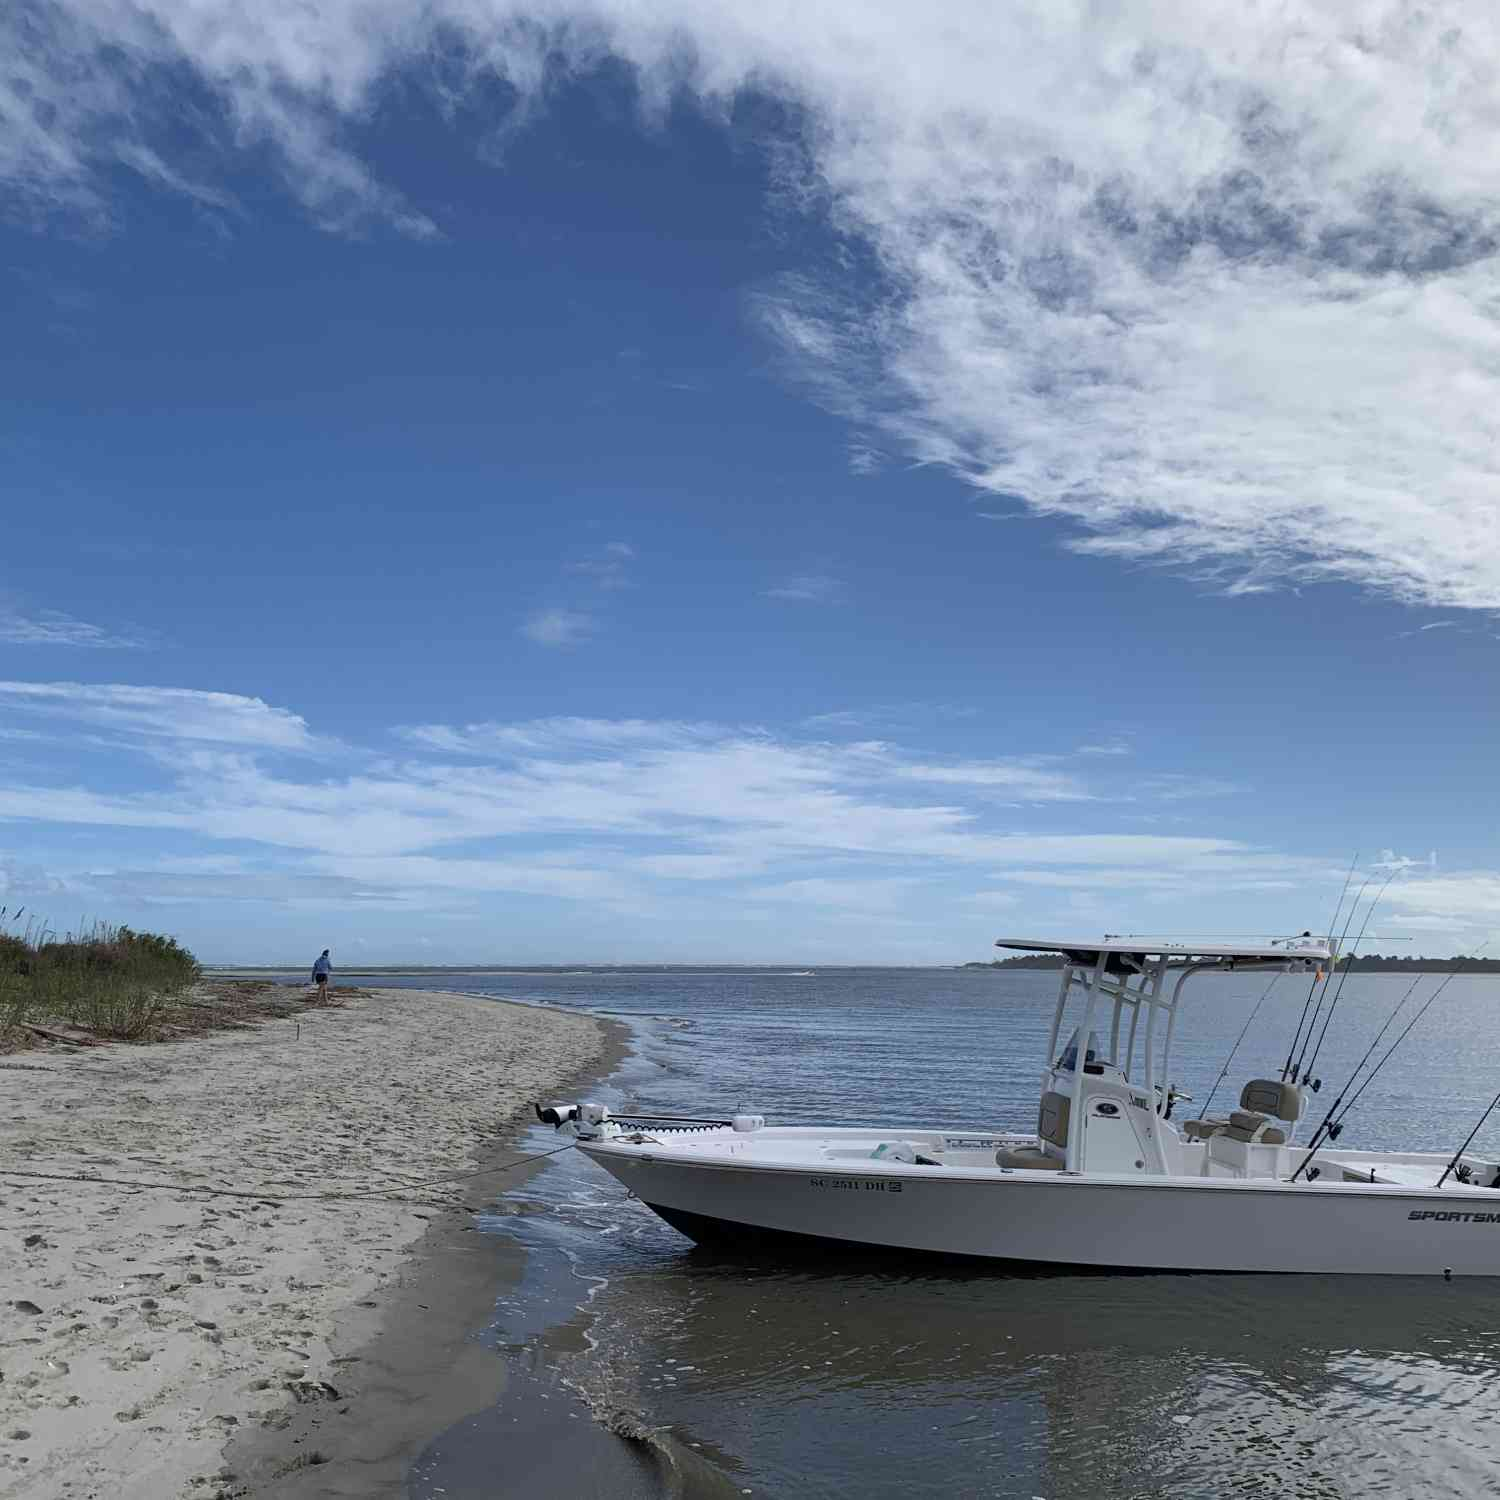 Title: Happy Thanksgiving! - On board their Sportsman Masters 247 Bay Boat - Location: Morris island, SC. Participating in the Photo Contest #SportsmanDecember2020